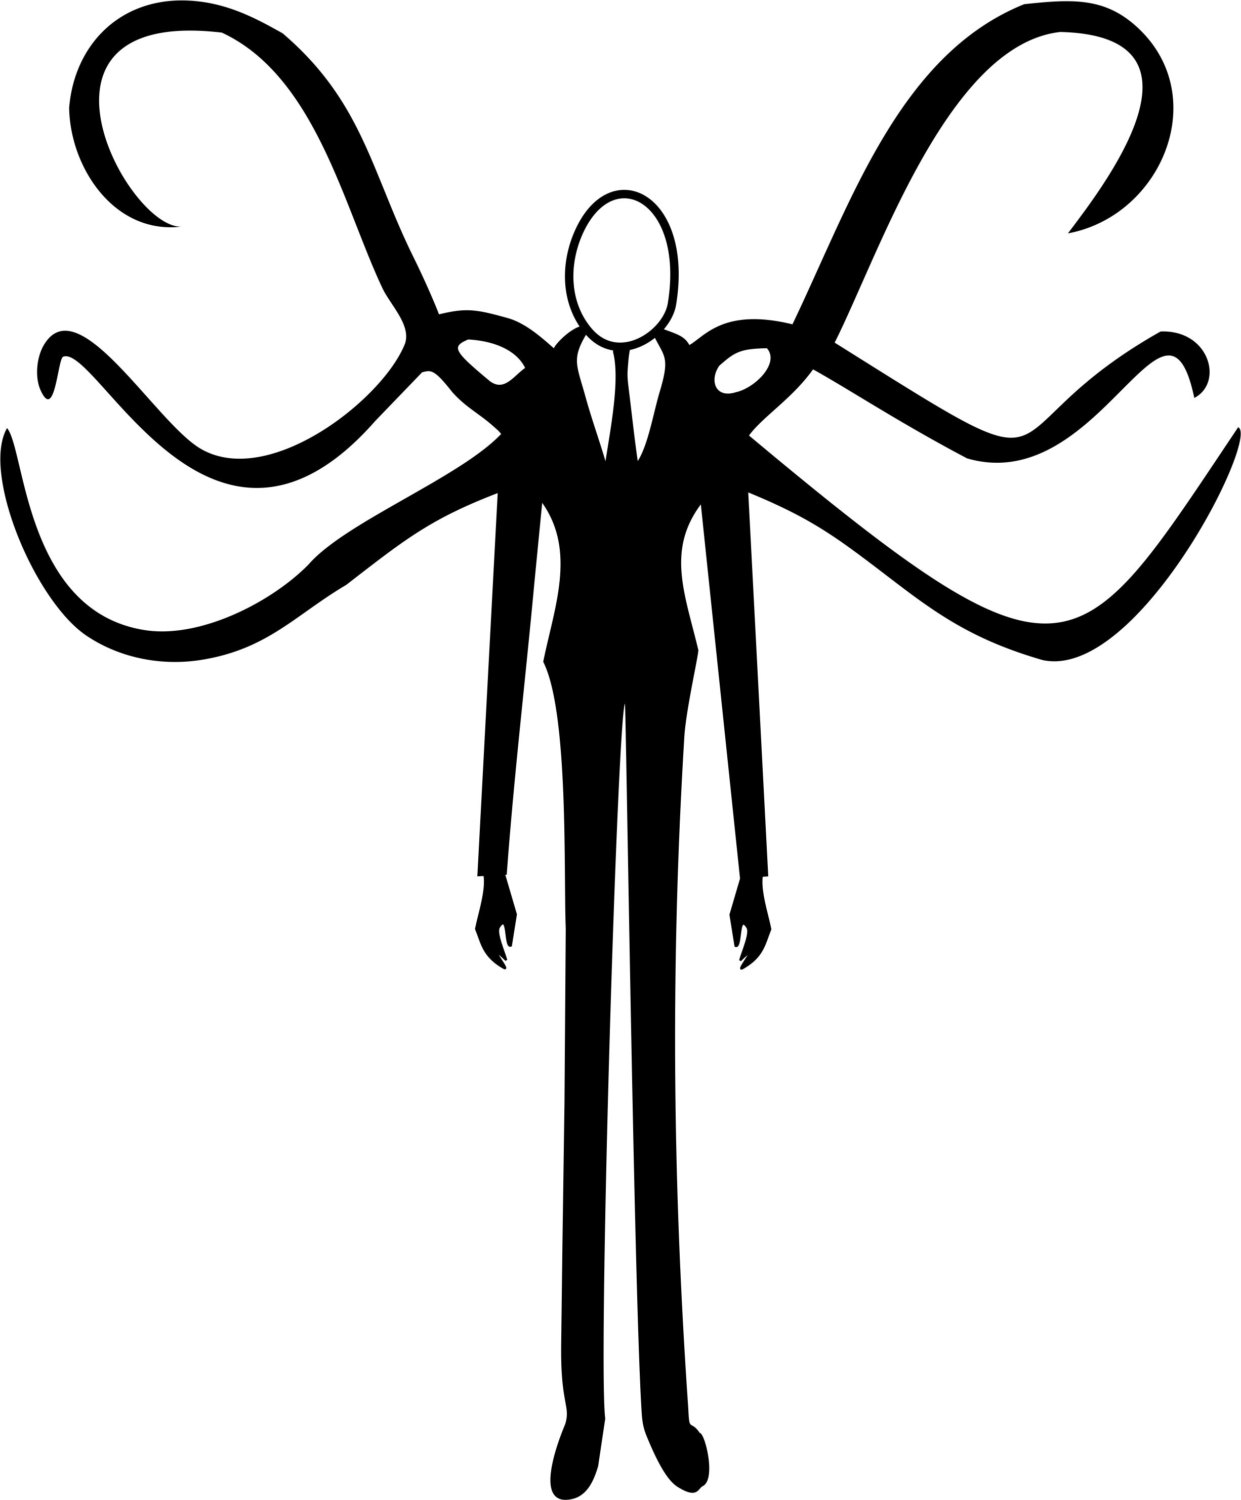 Slender Man clipart Decal Slenderman Slender Man vinyl